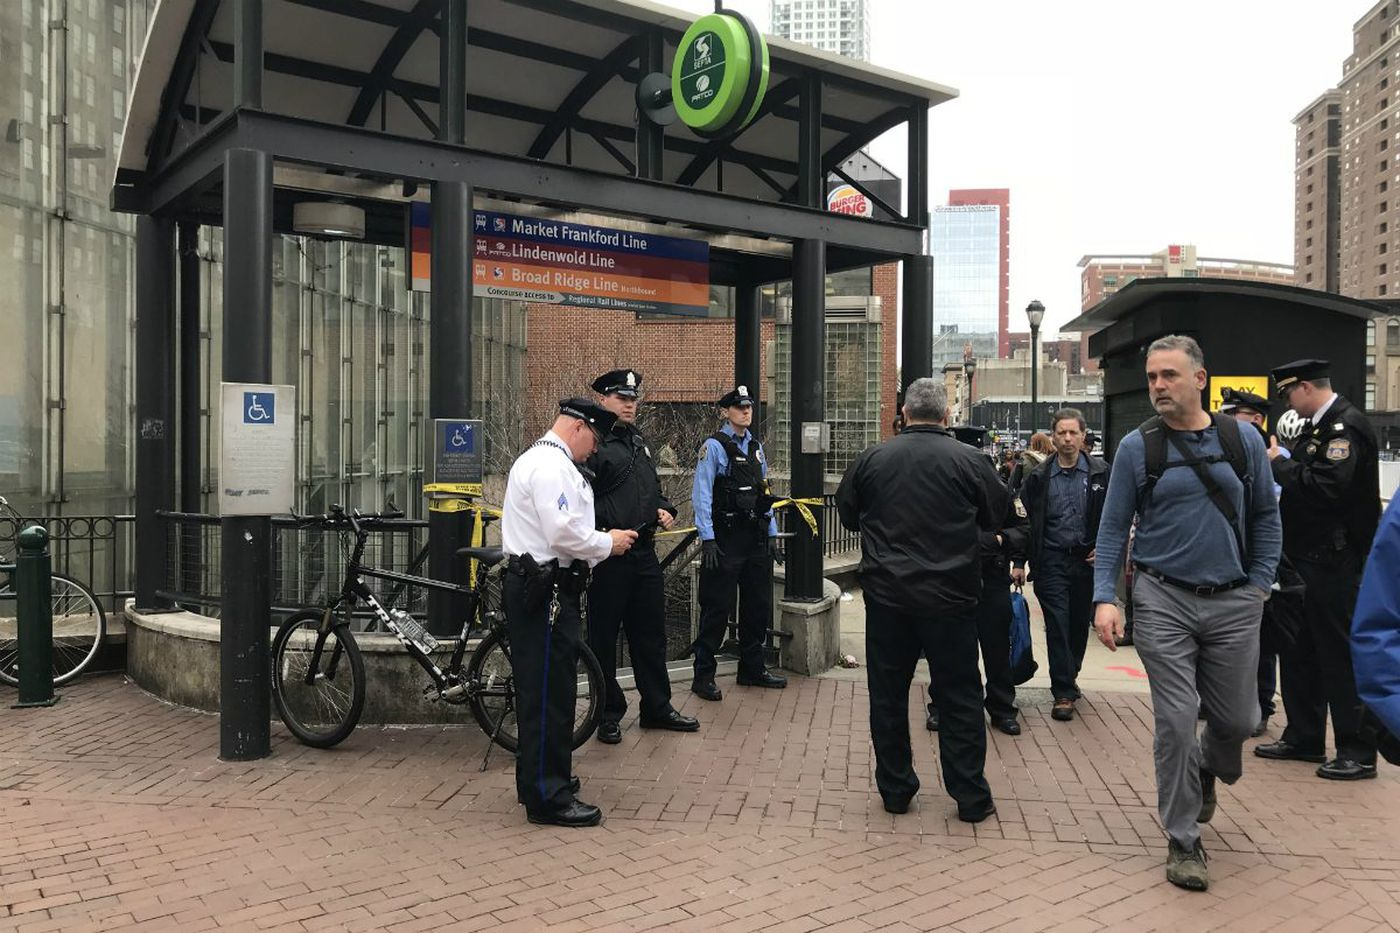 Teen surrenders in stabbing at 8th and Market subway station